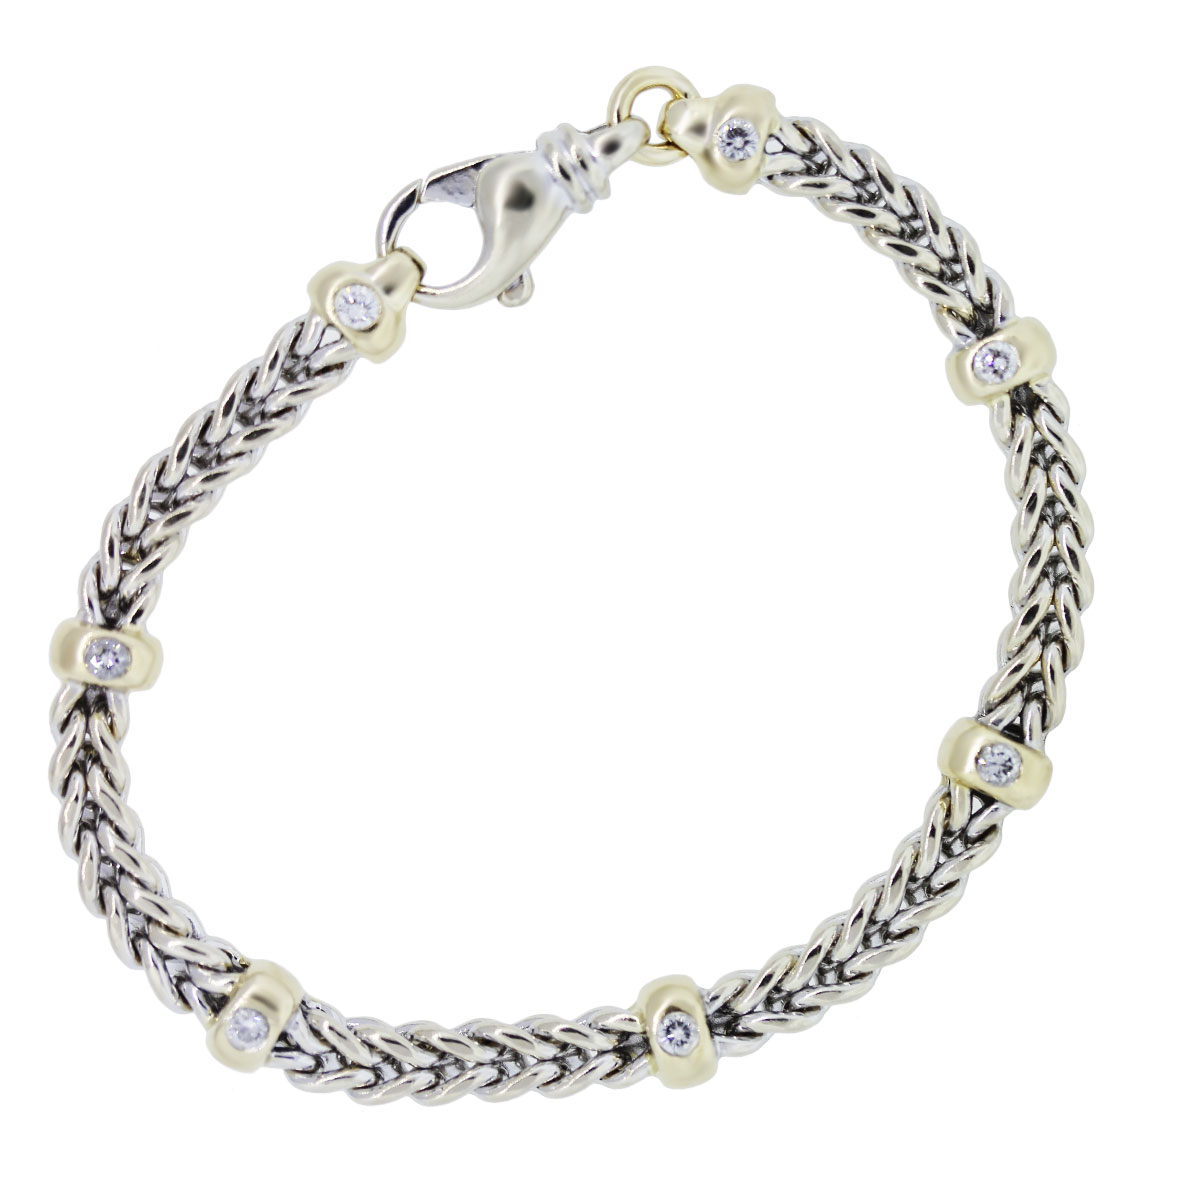 Two Tone Diamond Accents Woven Bracelet